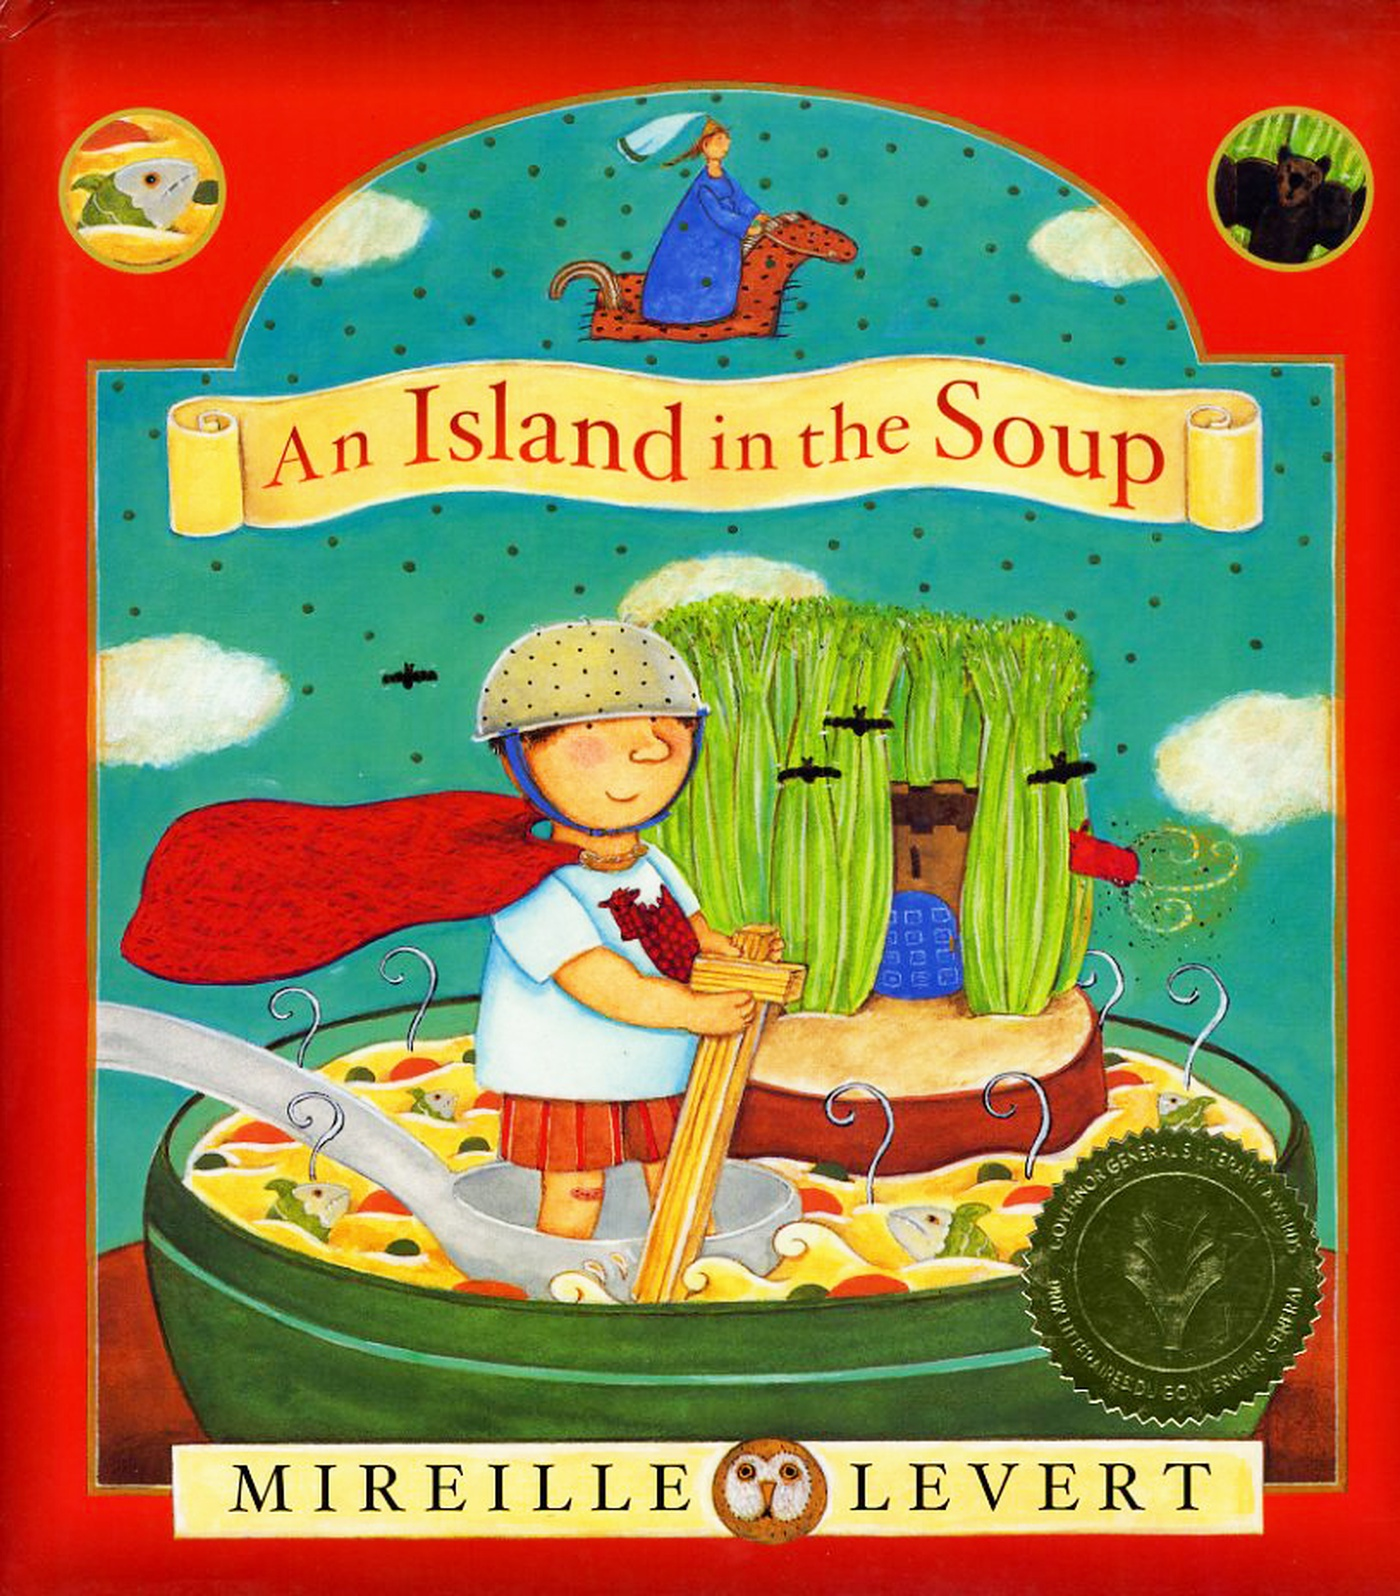 Mireille Levert - An Island in the Soup